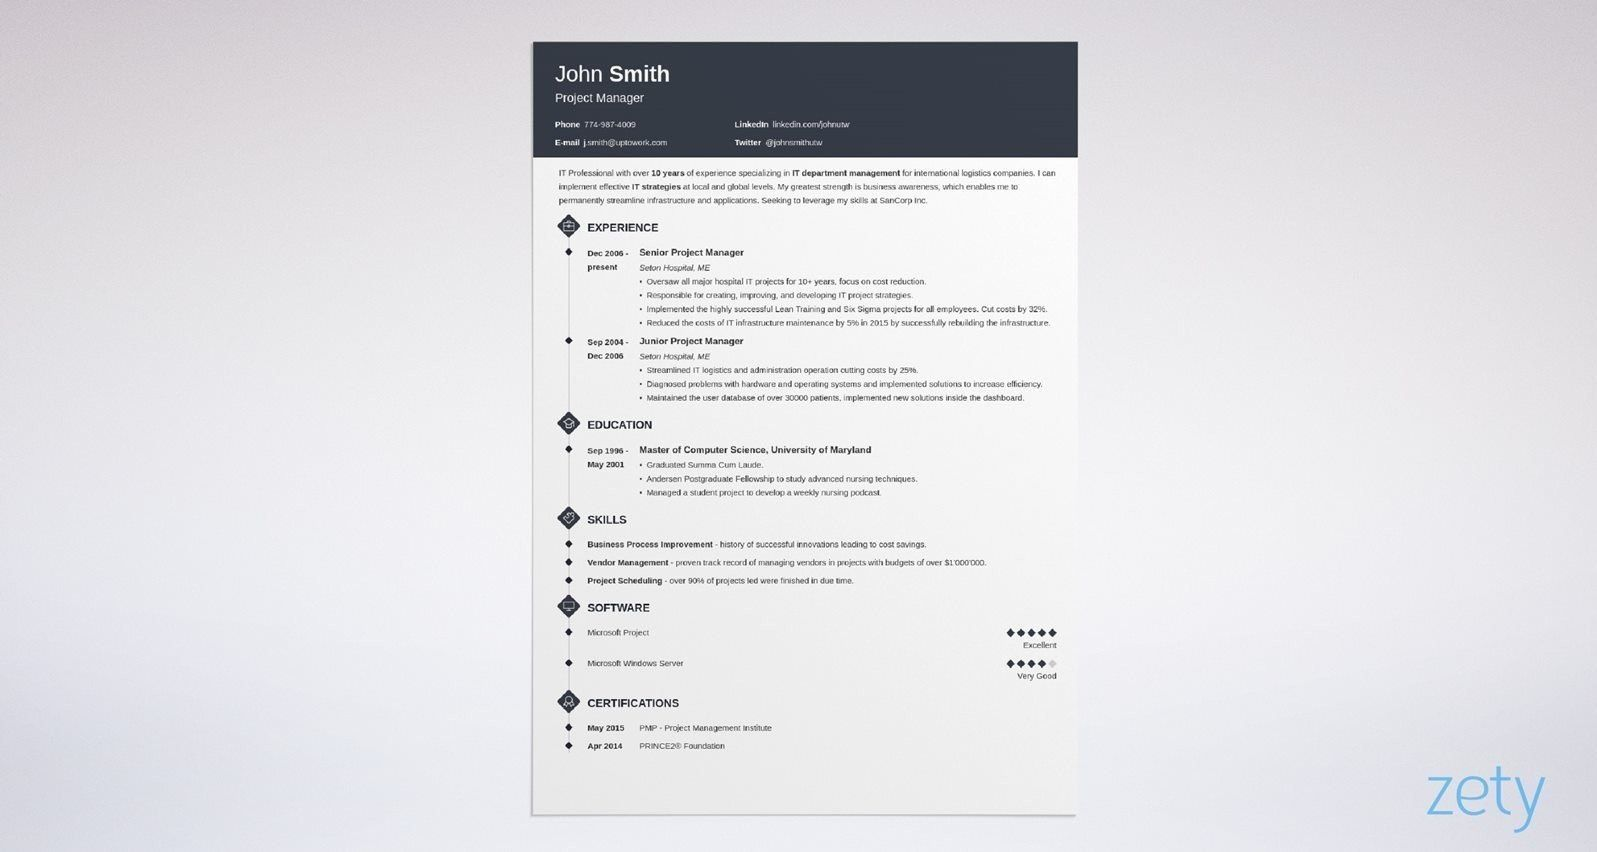 003 Fearsome Best Professional Resume Template Inspiration  Reddit 2020 DownloadFull